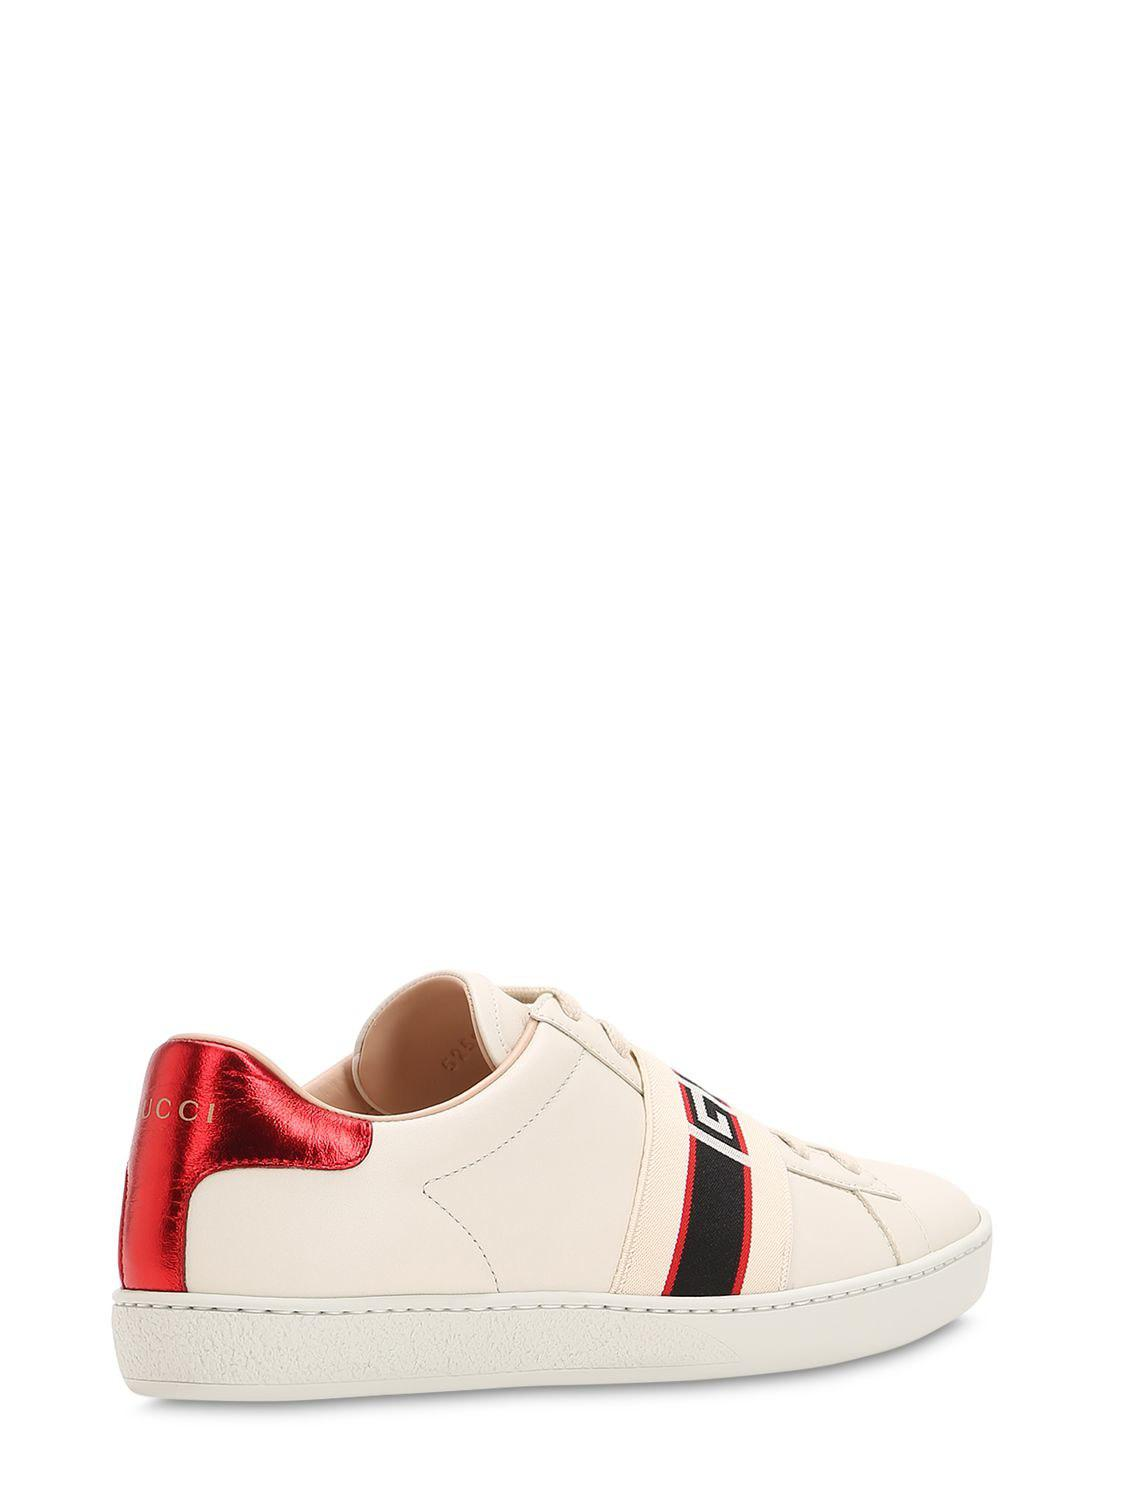 9daad530fb9 Gucci New Ace Elastic Band Leather Sneakers in White - Lyst